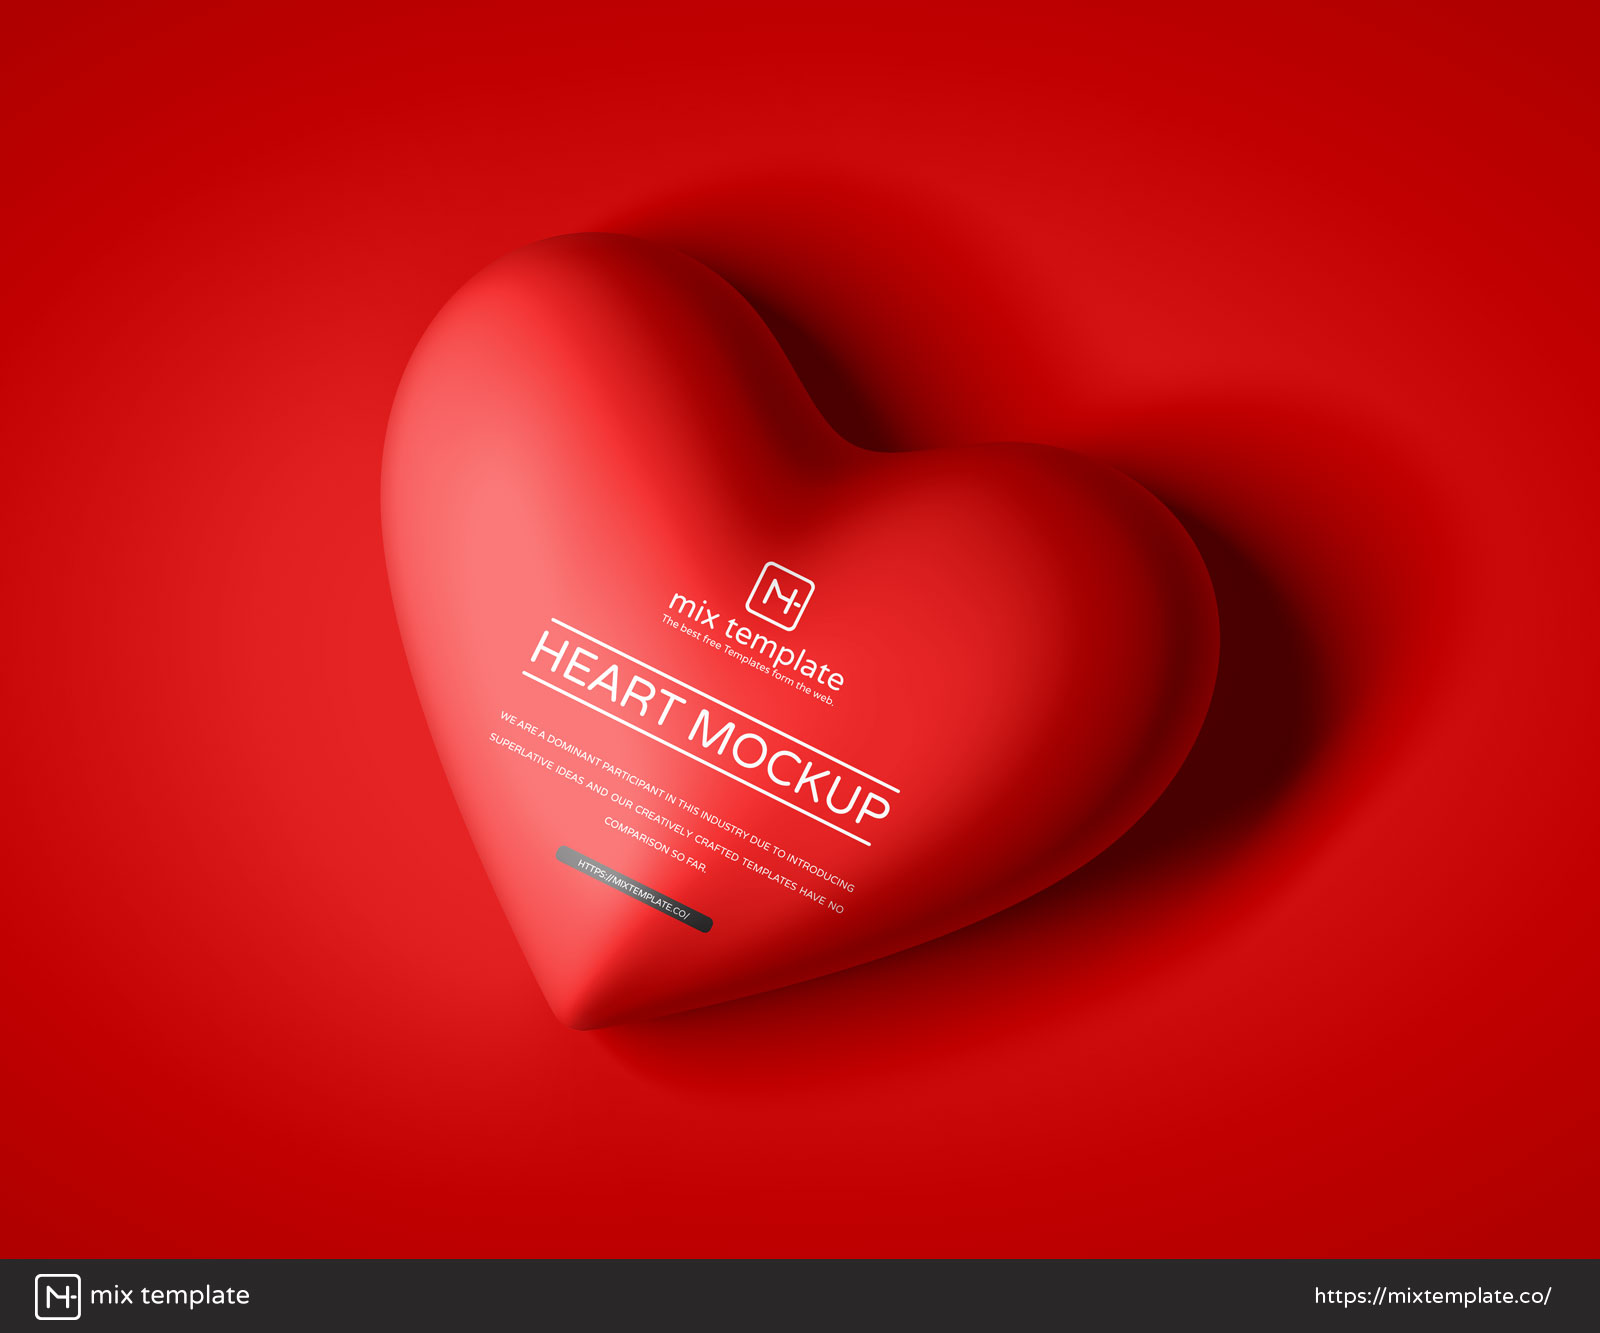 Free-Top-View-Heart-Mockup-Template